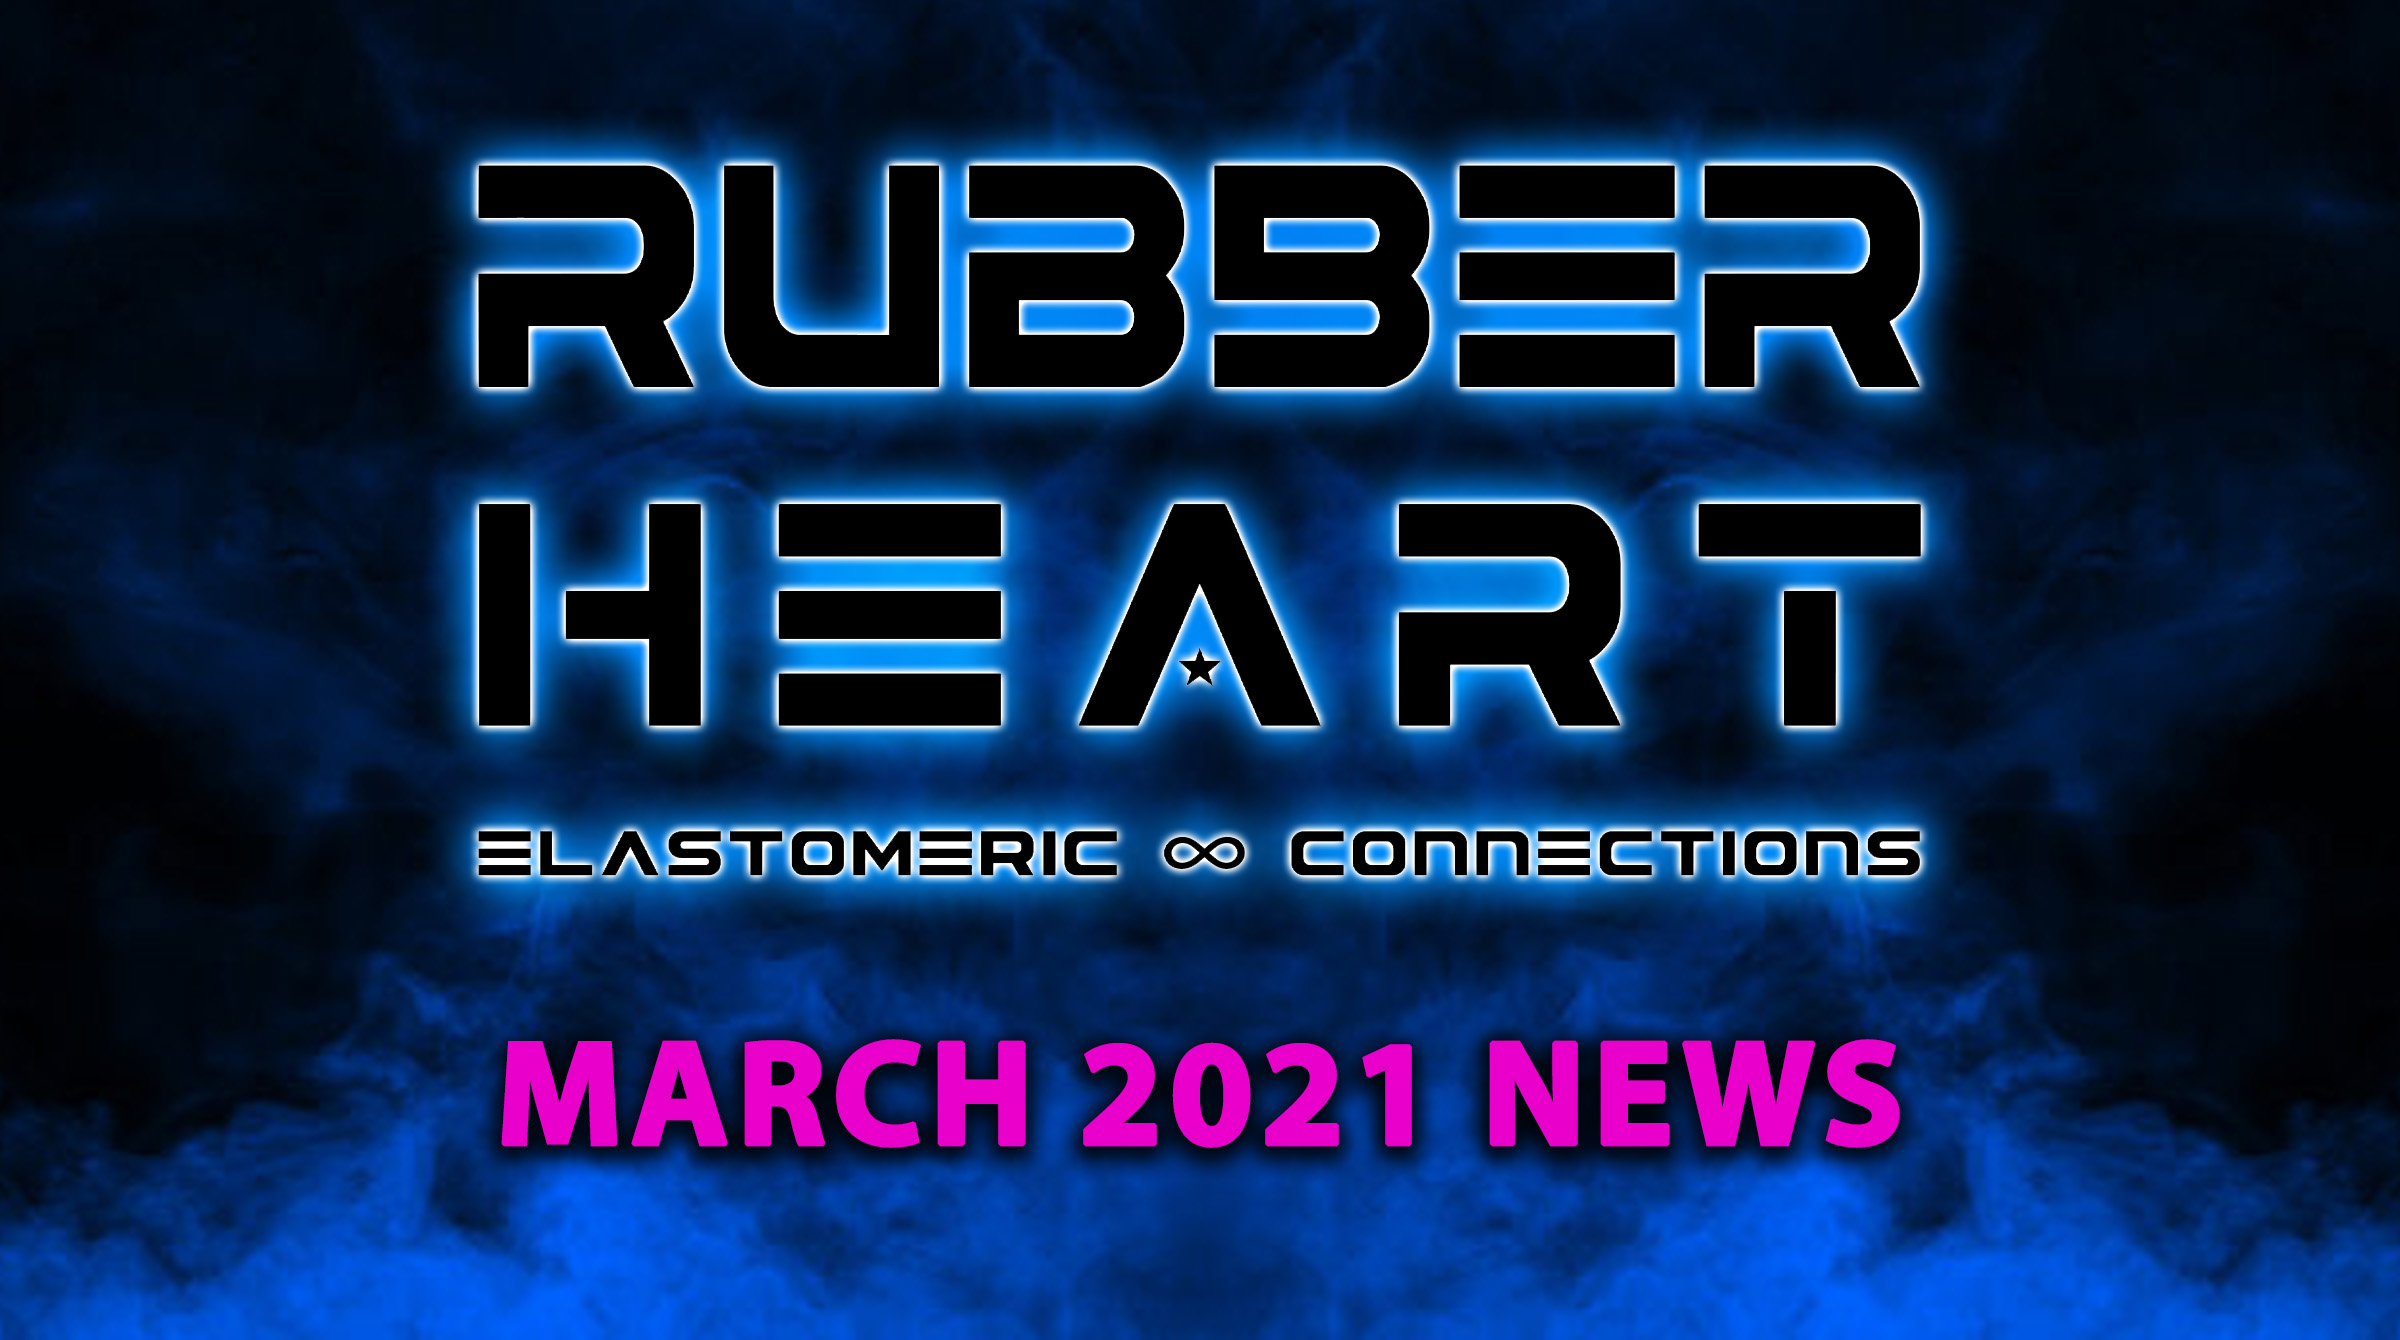 Rubber Heart March 2021 News